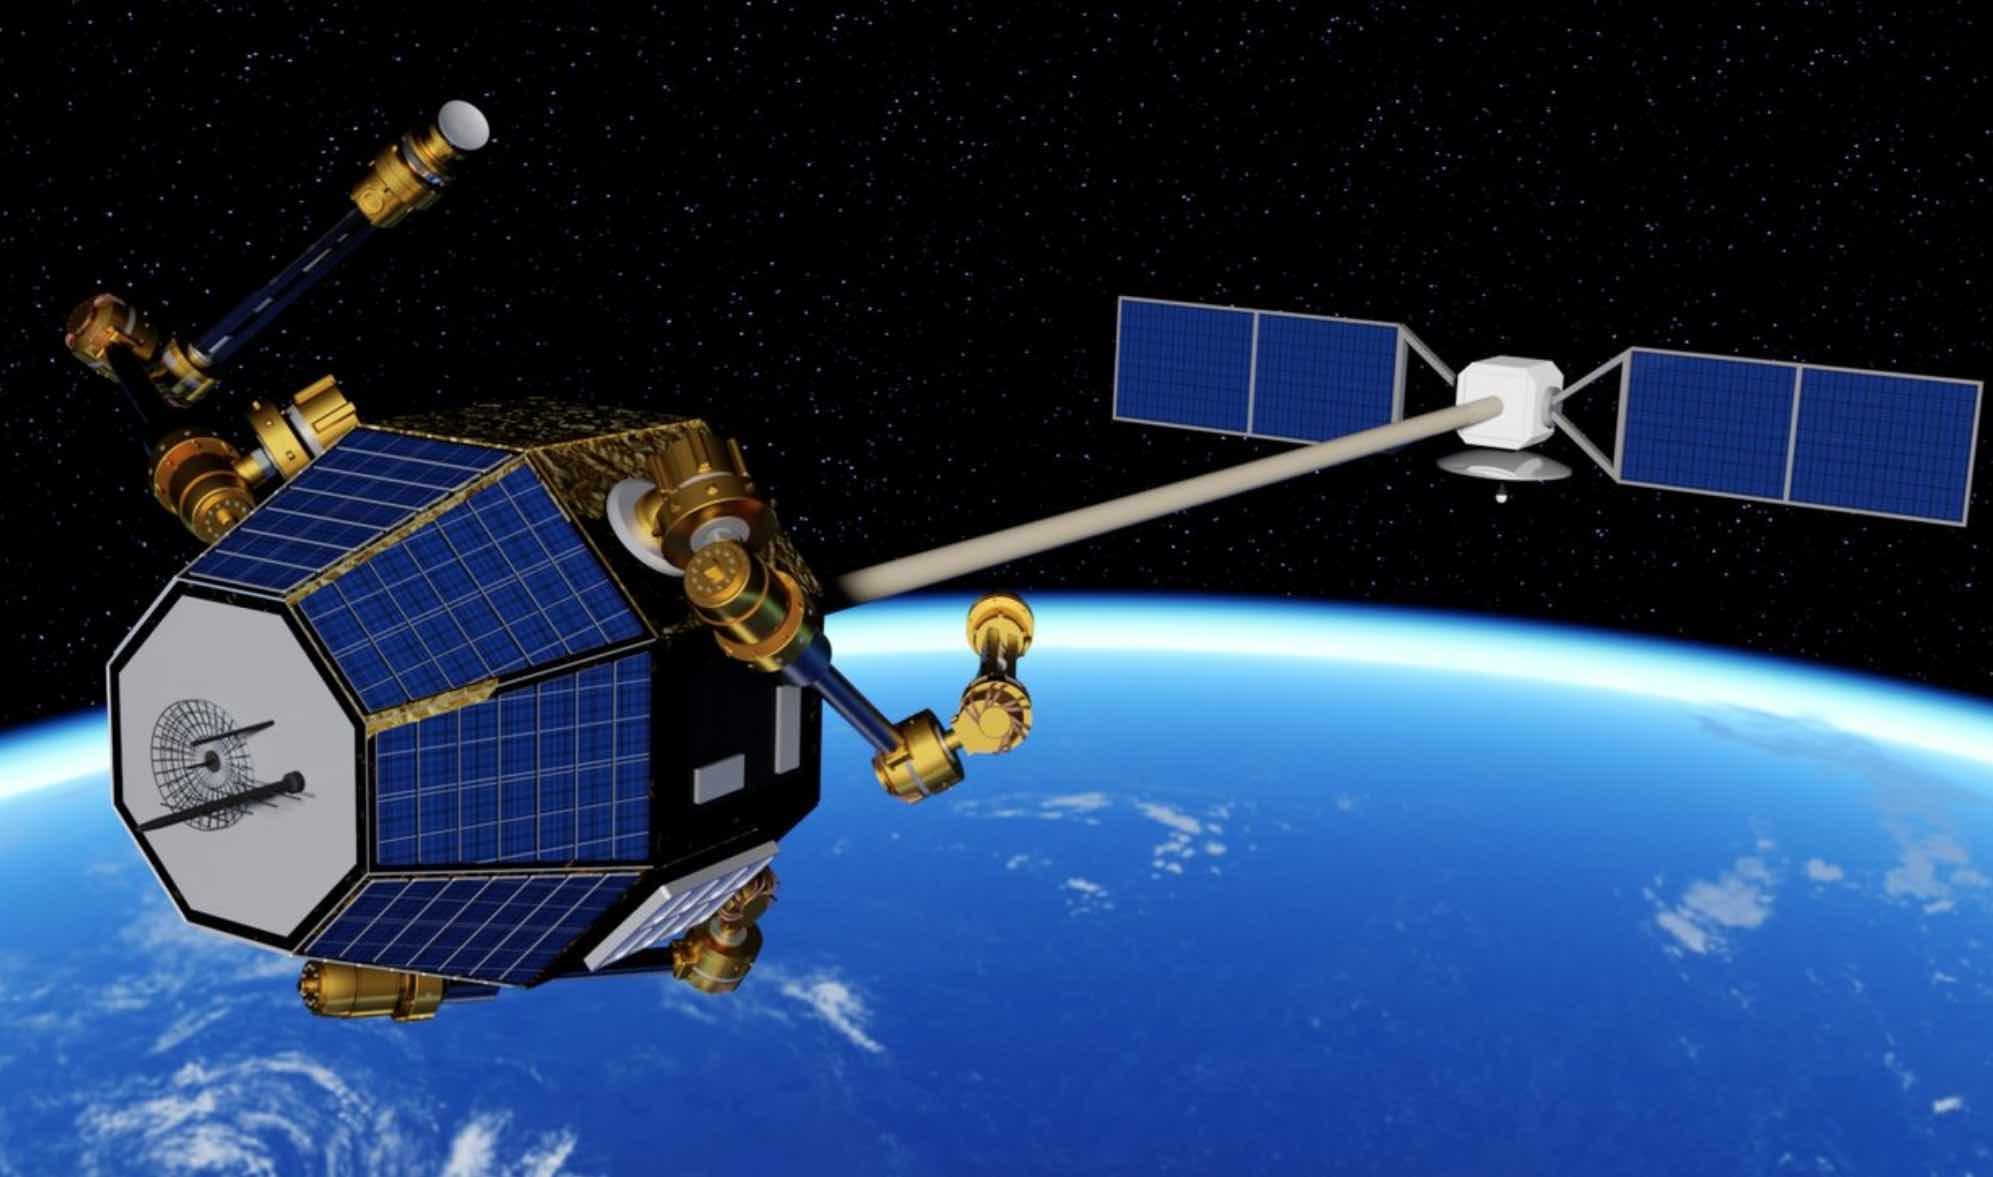 Aligning motorized dish to arc of satellites a beginner's guide with pictorial representations